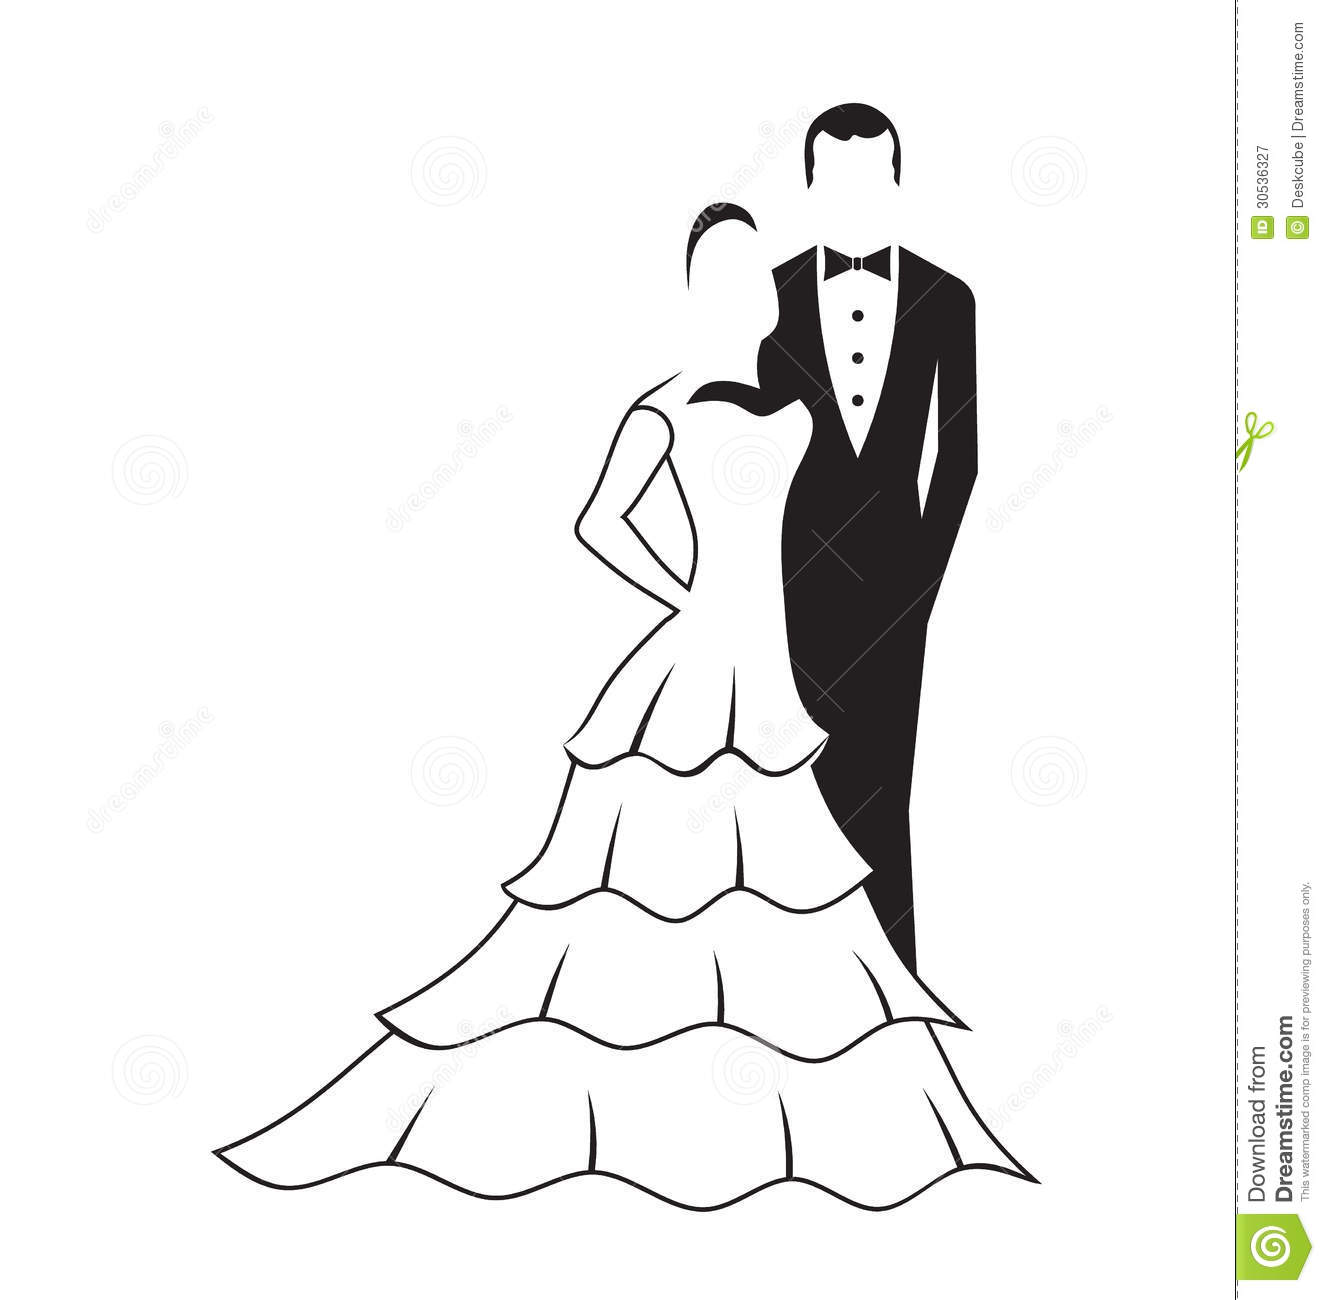 hight resolution of bride and groom logo bride and groom silhouette clip art